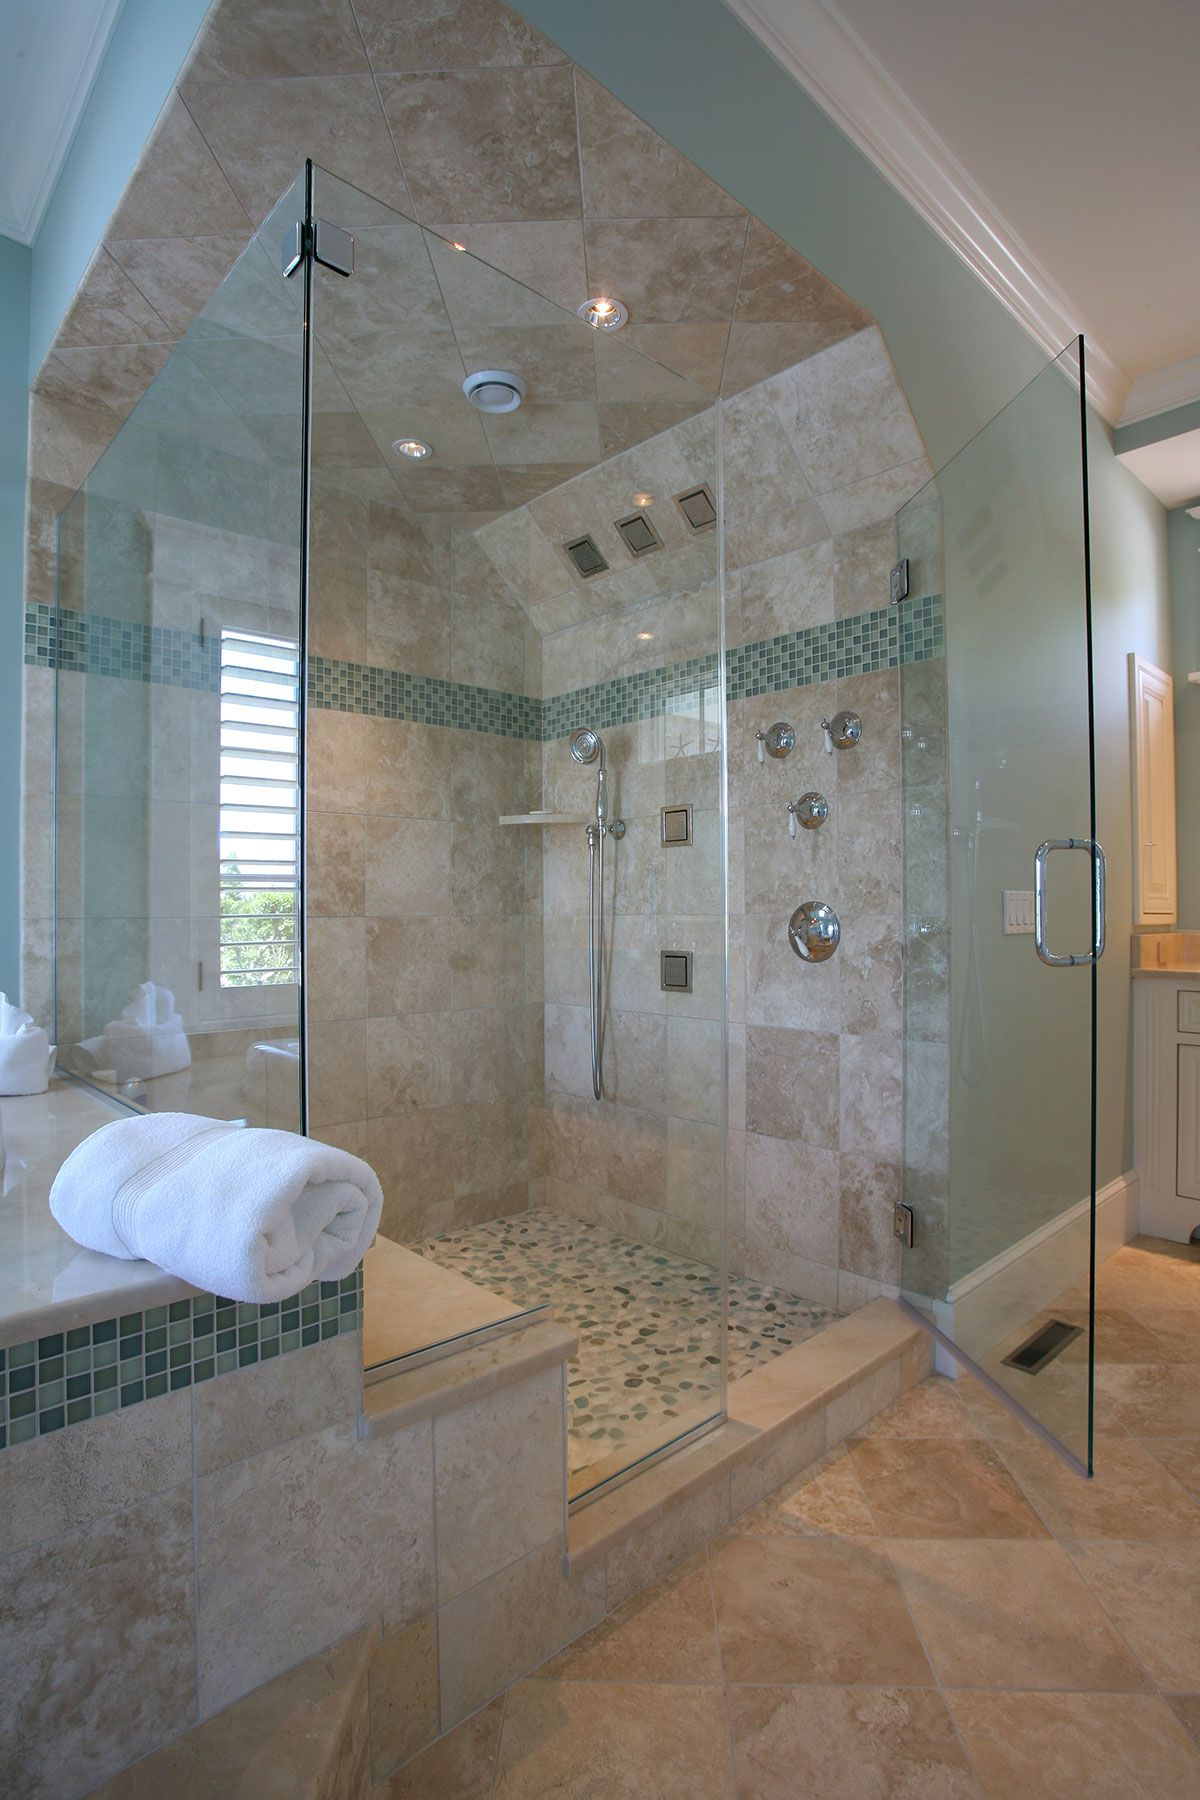 Custom Built Cape Cod Shower With Surrounding Mosaic Style Tile